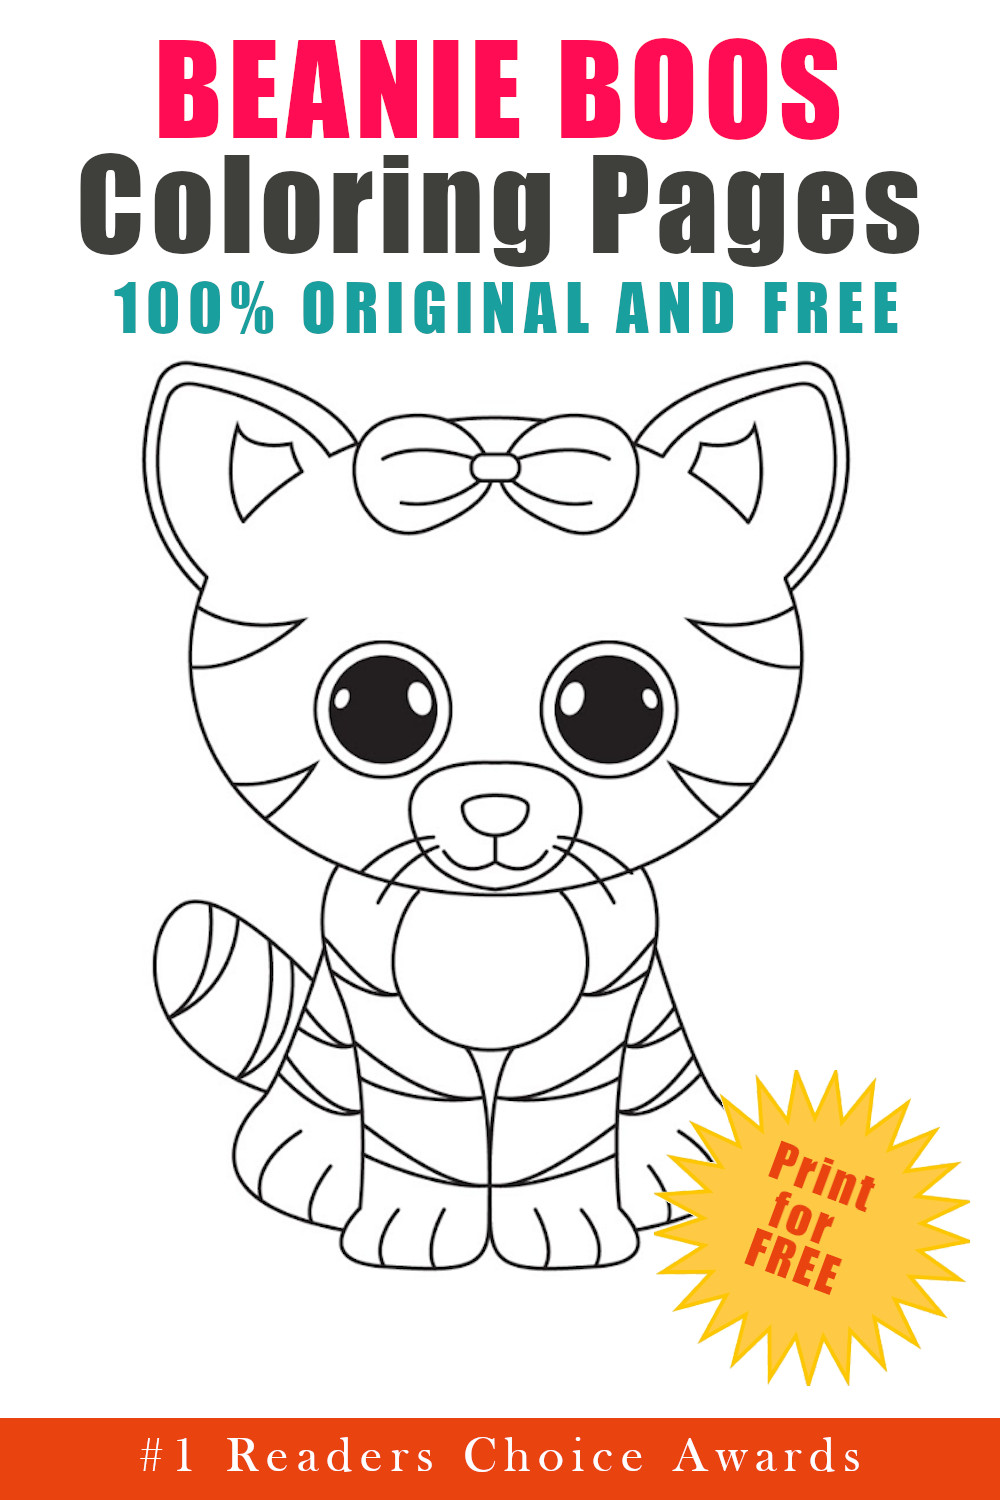 original and free beanie boos coloring pages